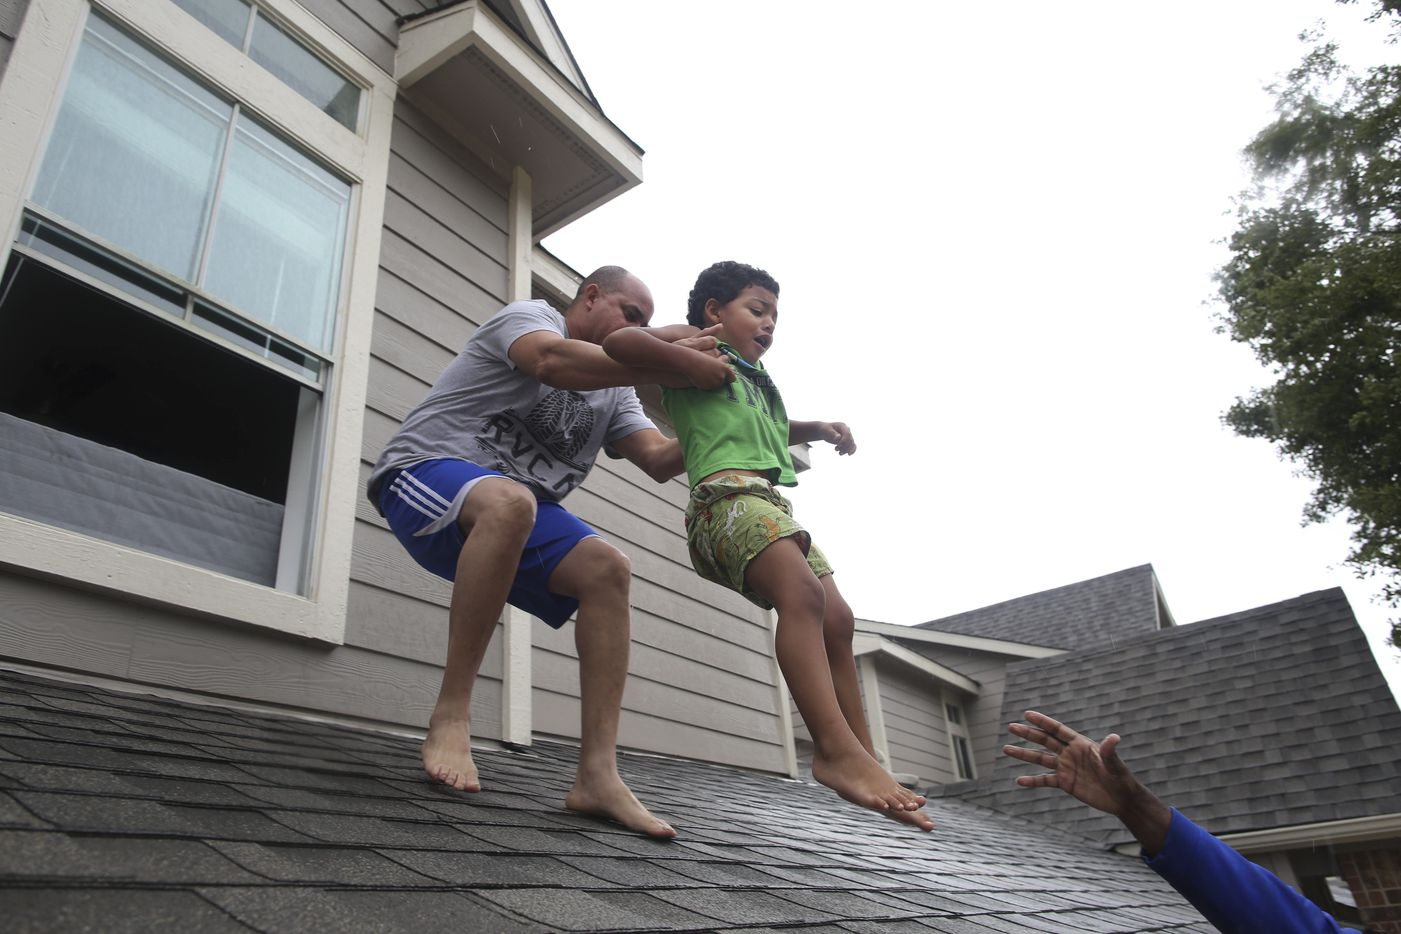 Castiel Torres, 3, is helped off of his roof by family friend Dagoberto Ordonez, left, into a waiting boat after the area flooded in Houston, Aug. 29, 2017. As one of the most destructive storms in the nation's history pummeled southeast Texas for a fourth day, forecasts on Tuesday called for still more rain, making clear that catastrophic flooding that had turned neighborhoods into lakes was just the start of a disaster that would take years to overcome.